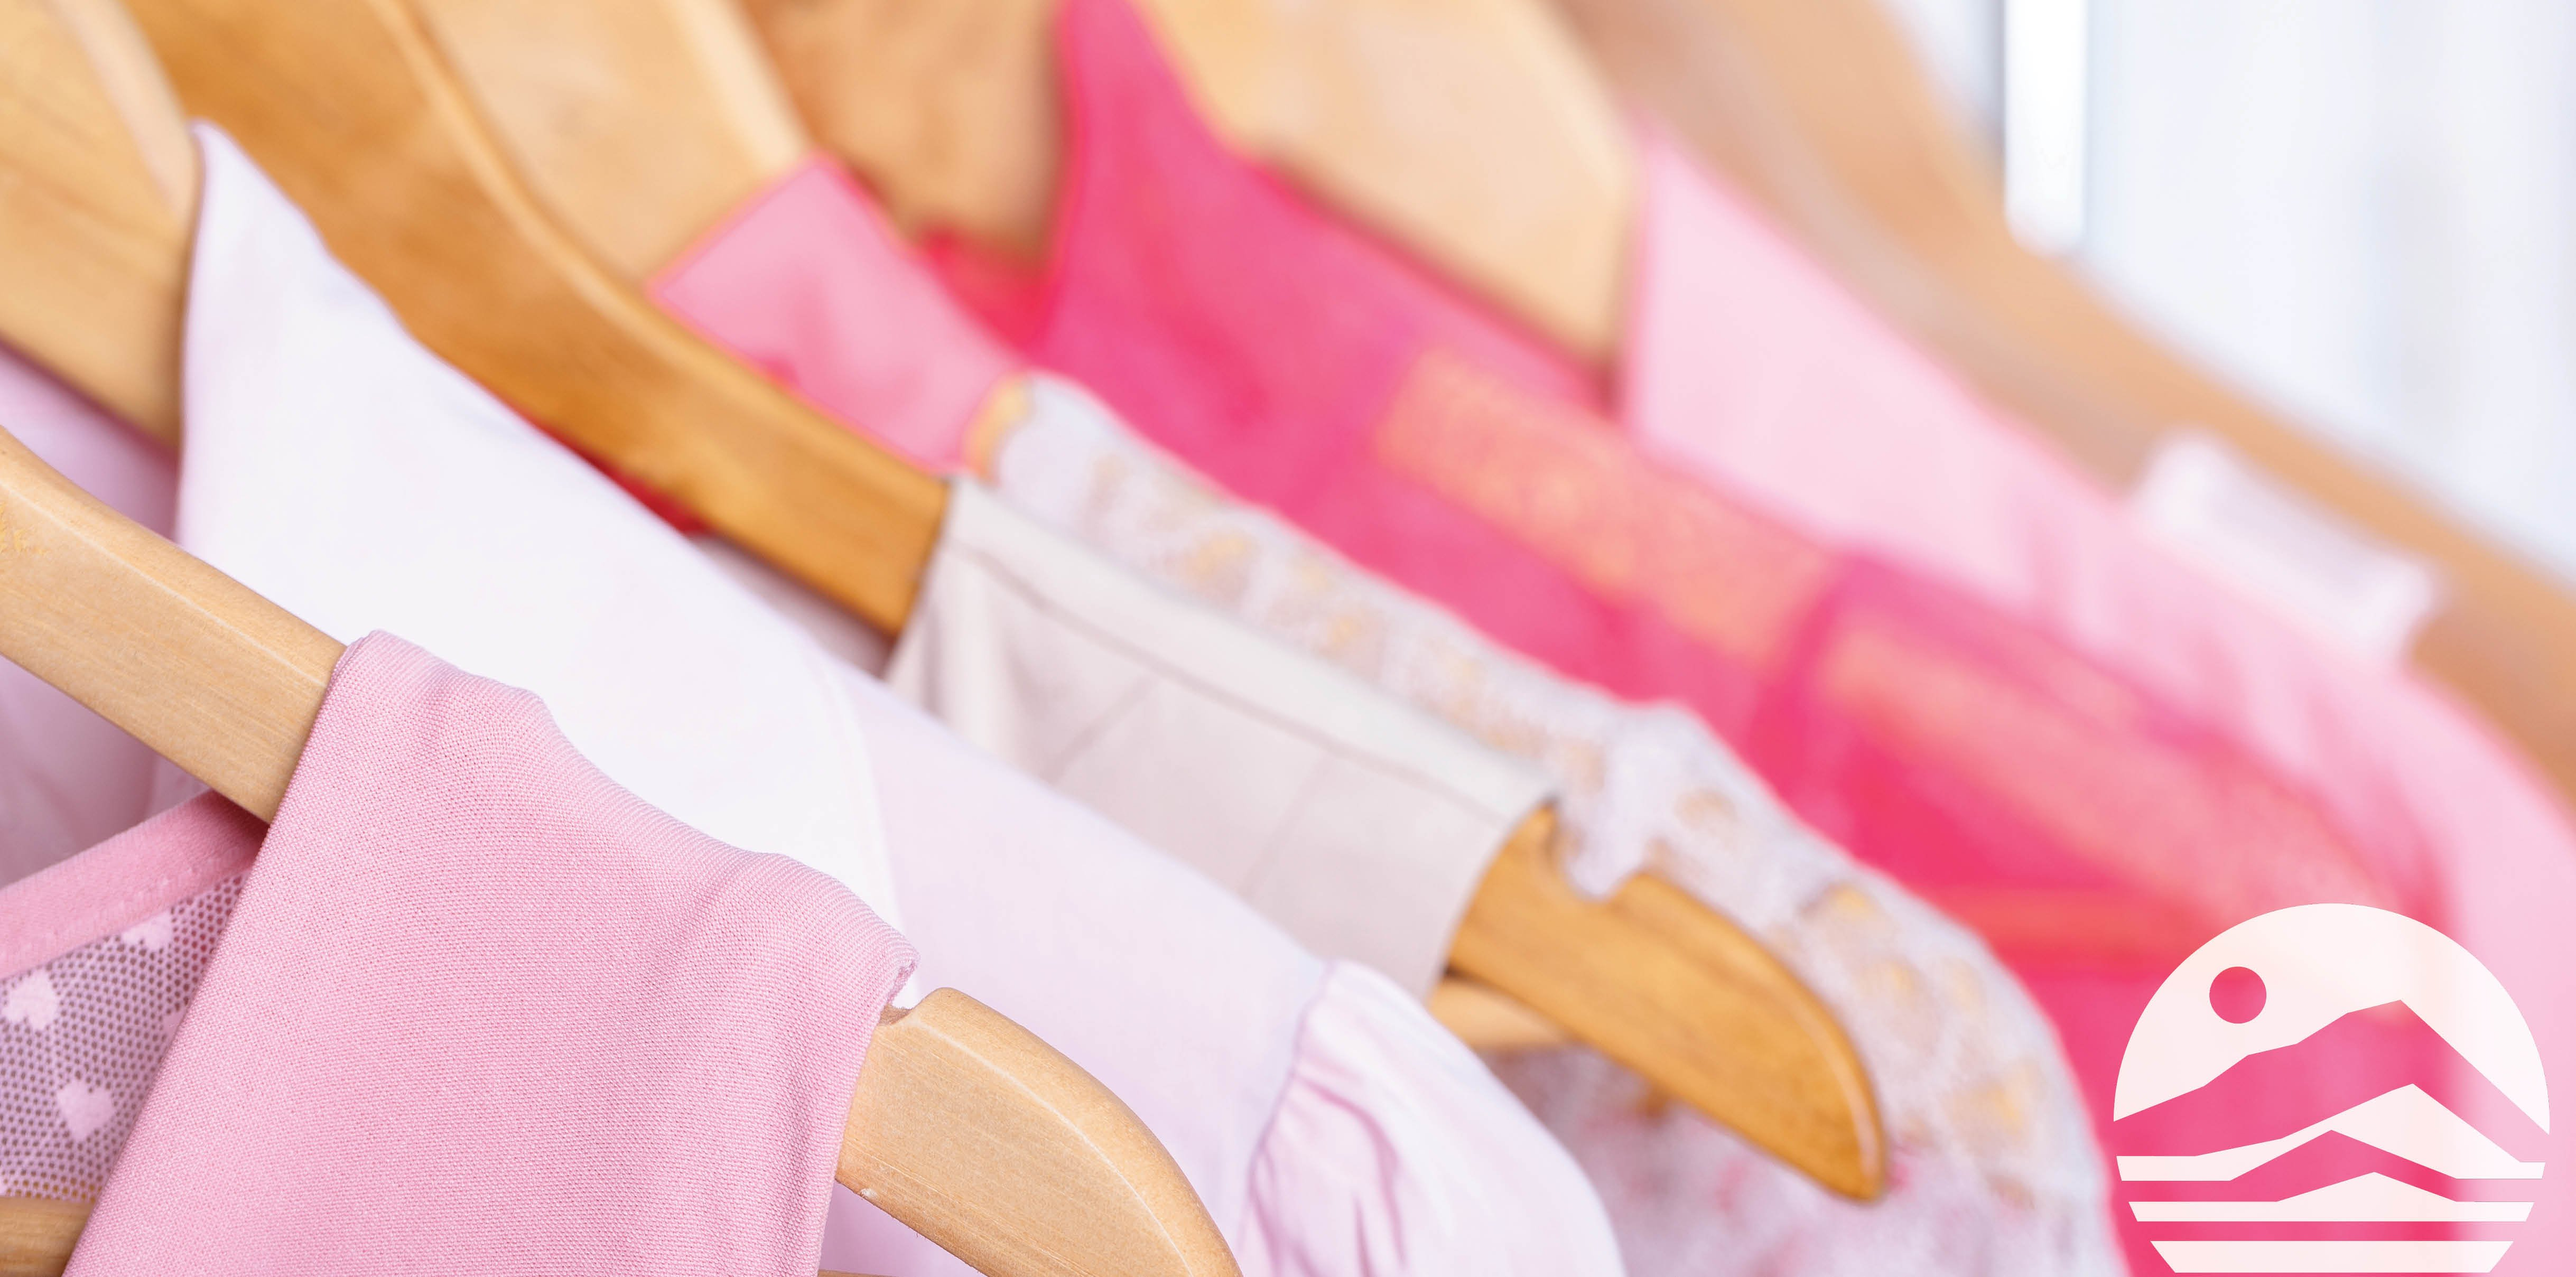 pink shirts on hangers